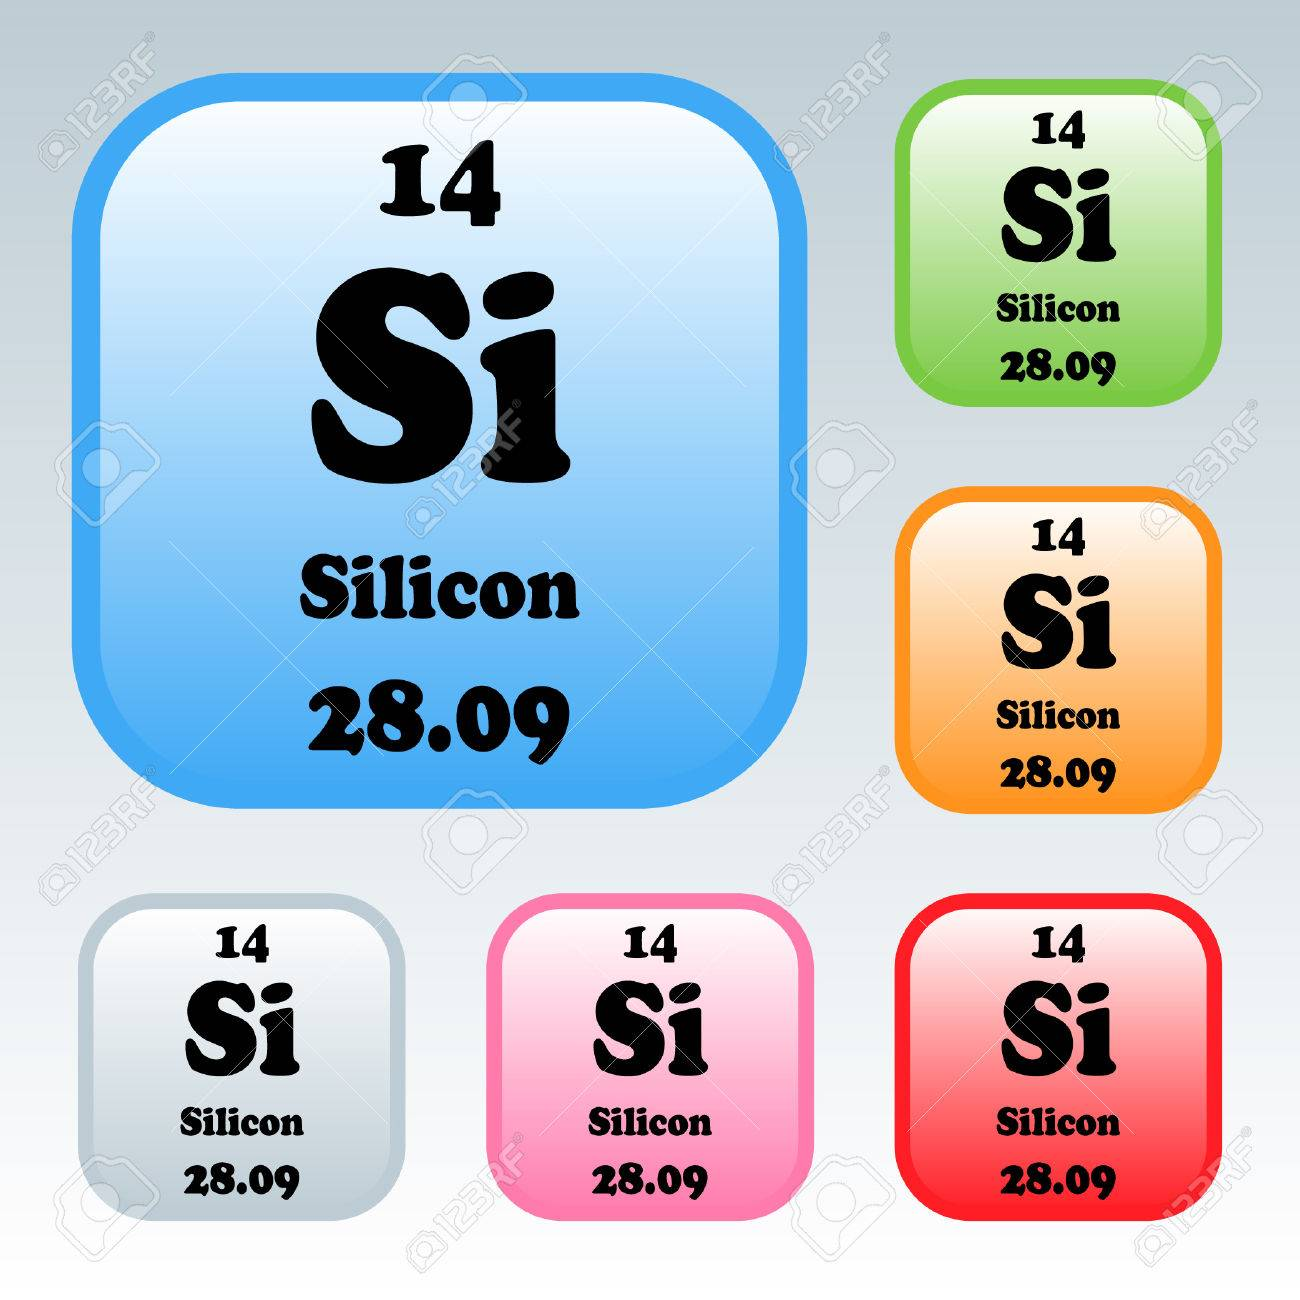 silicon element periodic table stock photo picture and royalty - Periodic Table Abbreviation For Silicon